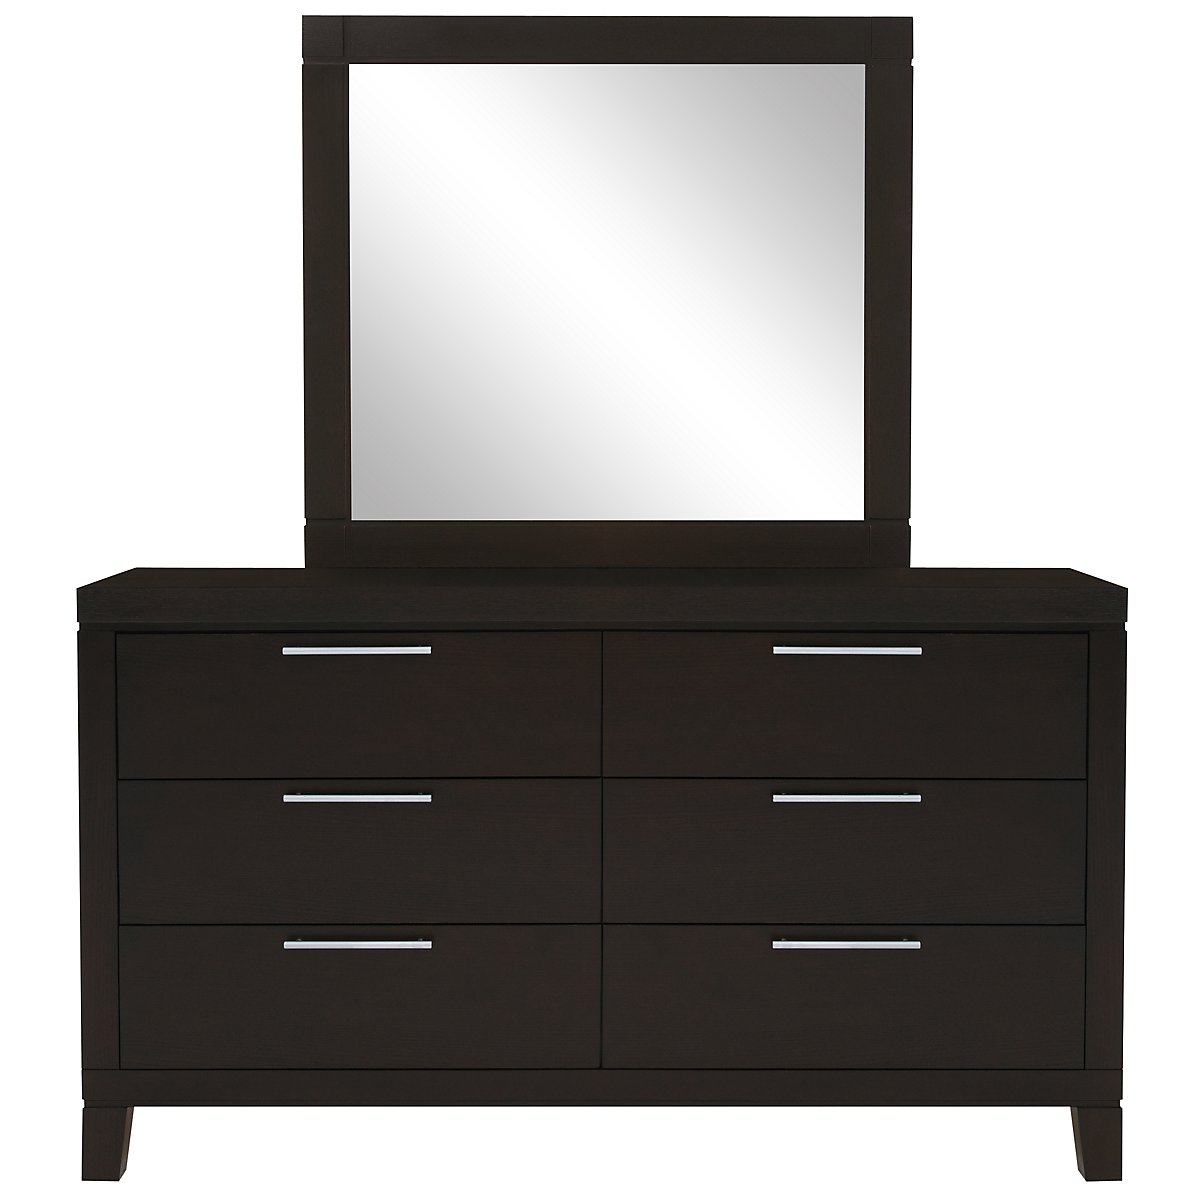 Encore2 Dark Tone Dresser & Mirror